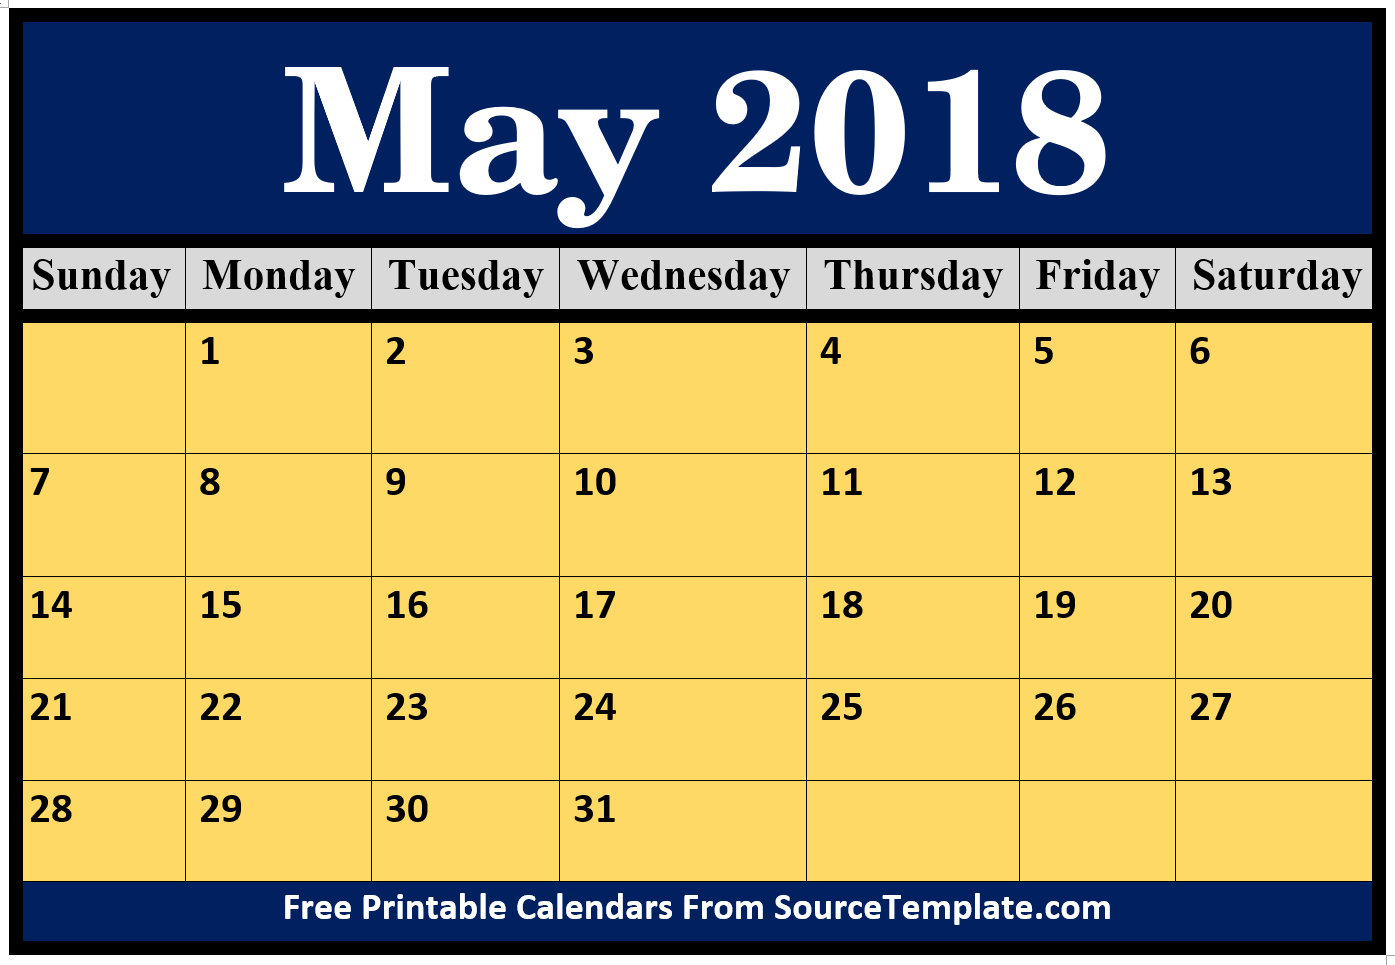 May 2018 Holidays Calendar USA